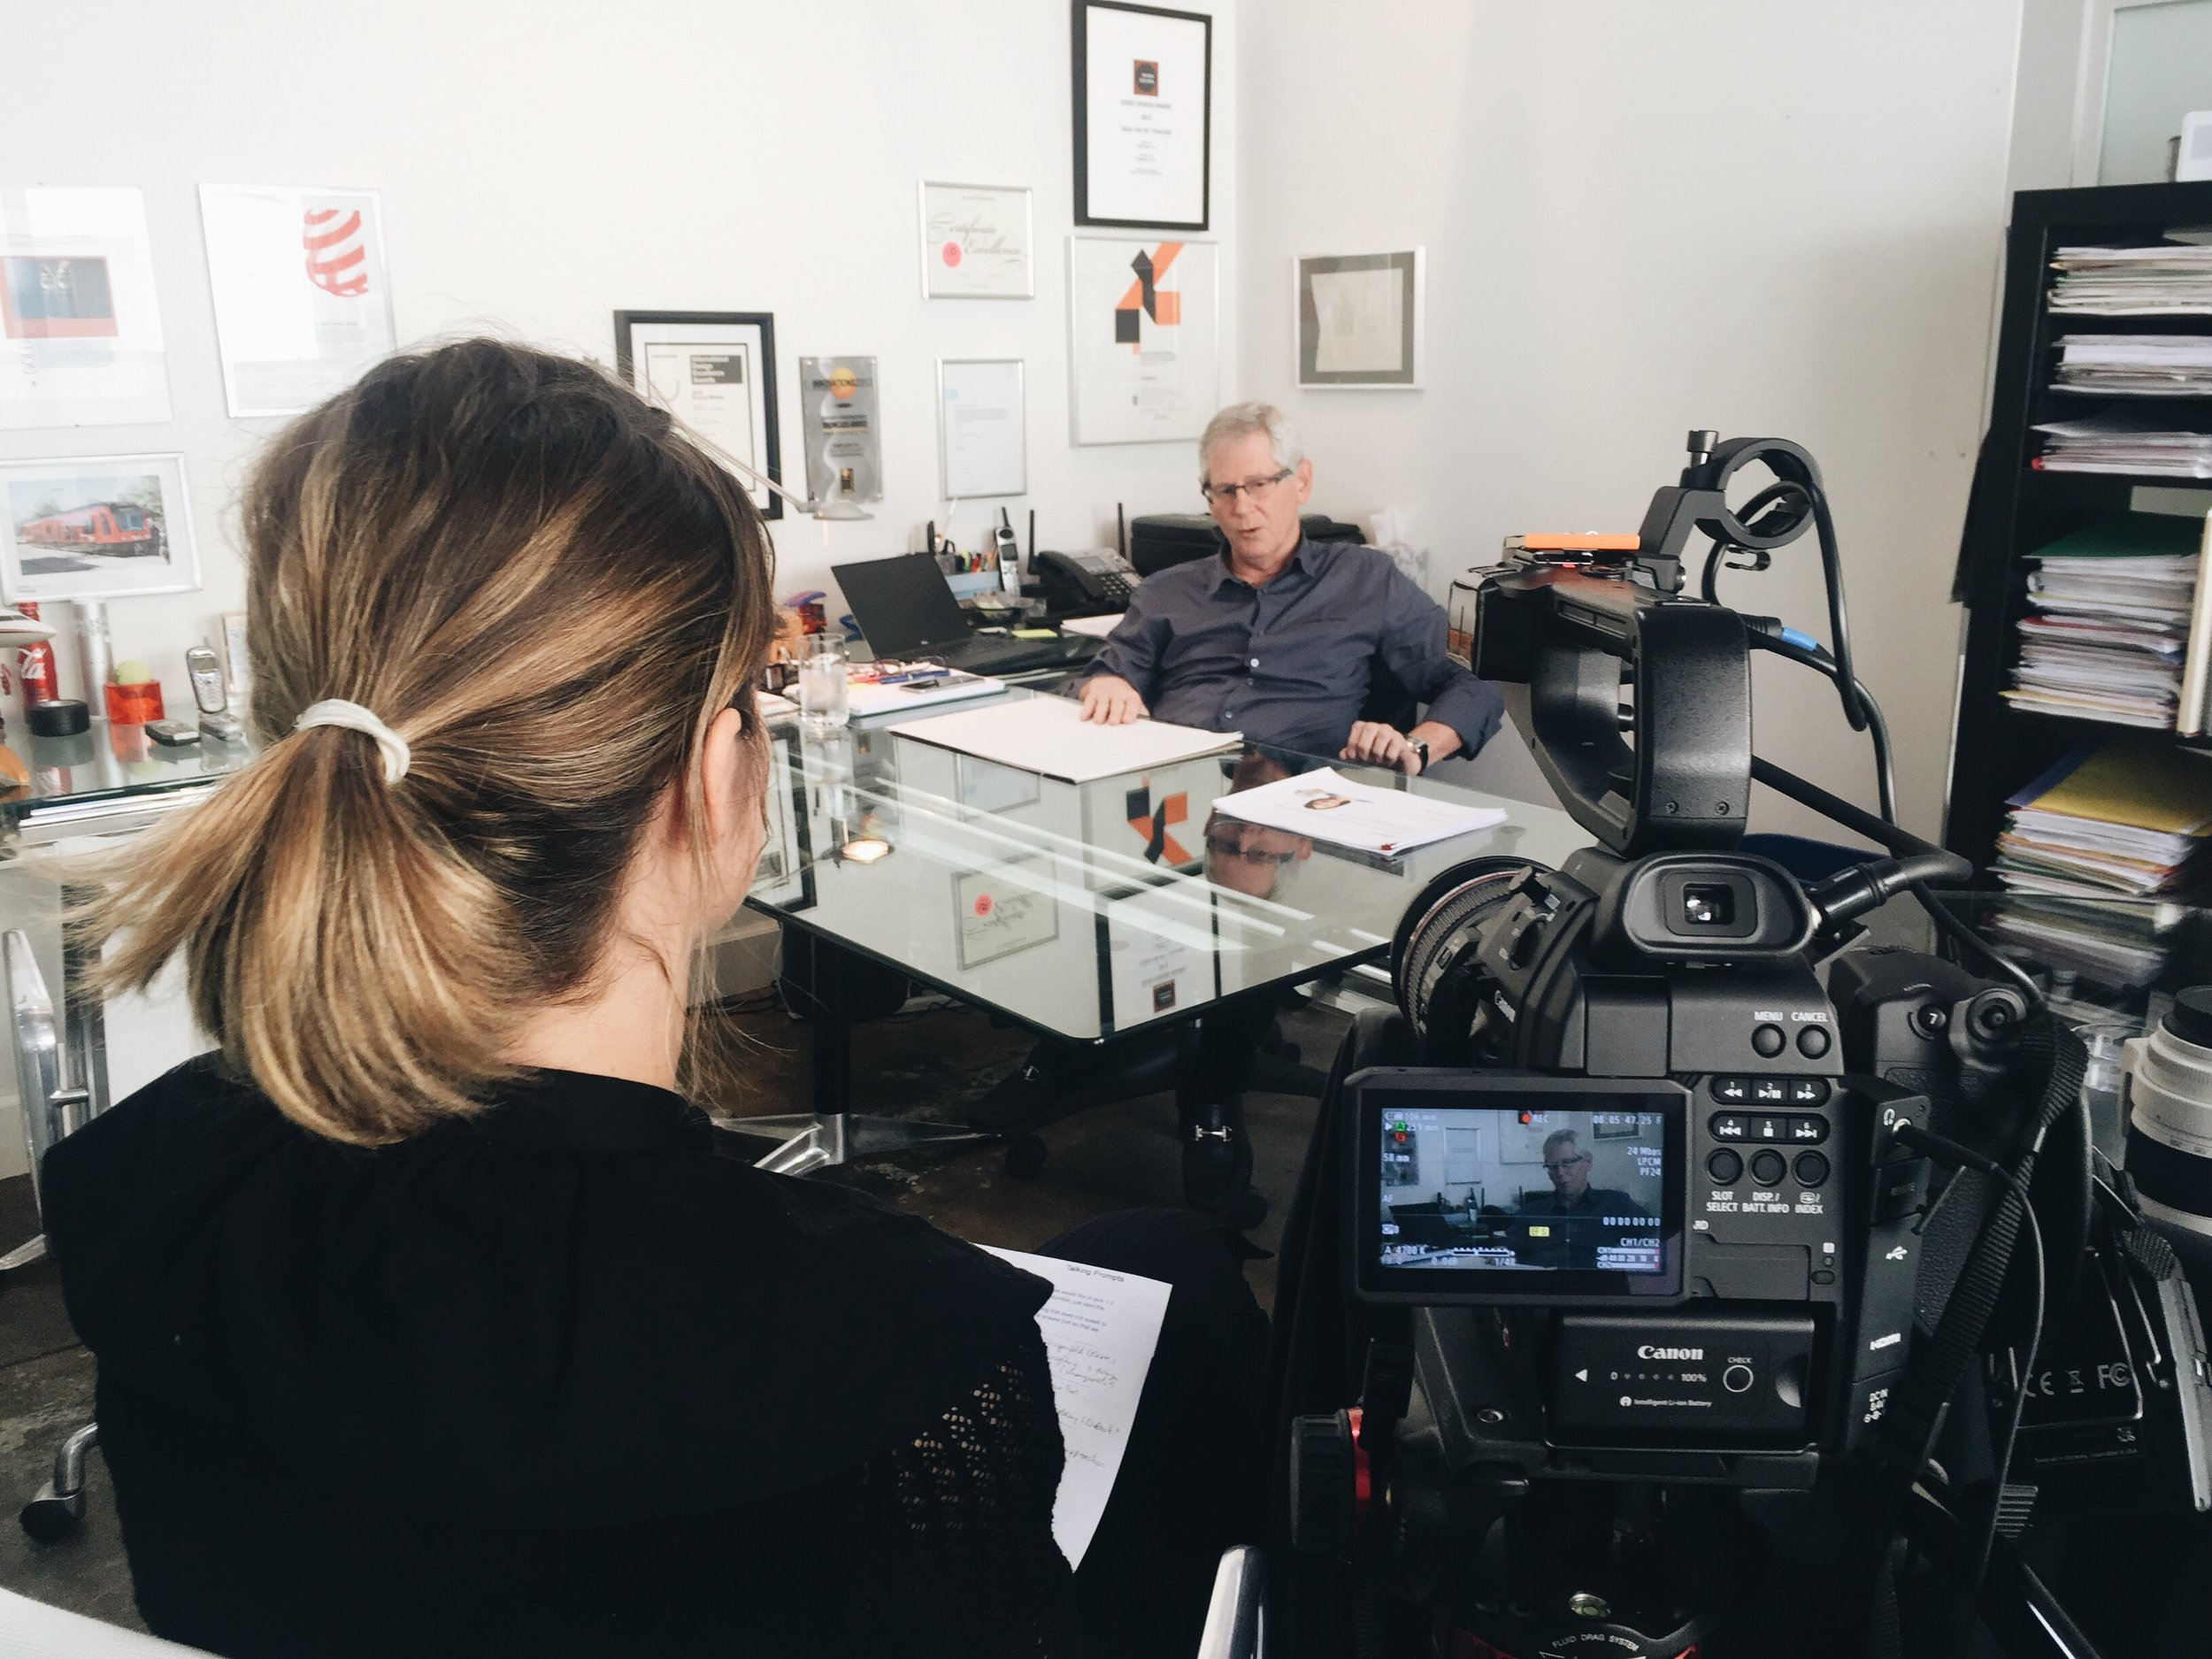 Julika interviewing Gad Shaanan at  Gadlight  about  Human Centered Design  for the  UC San Diego's Design Lab . Photo credit: T. Eco